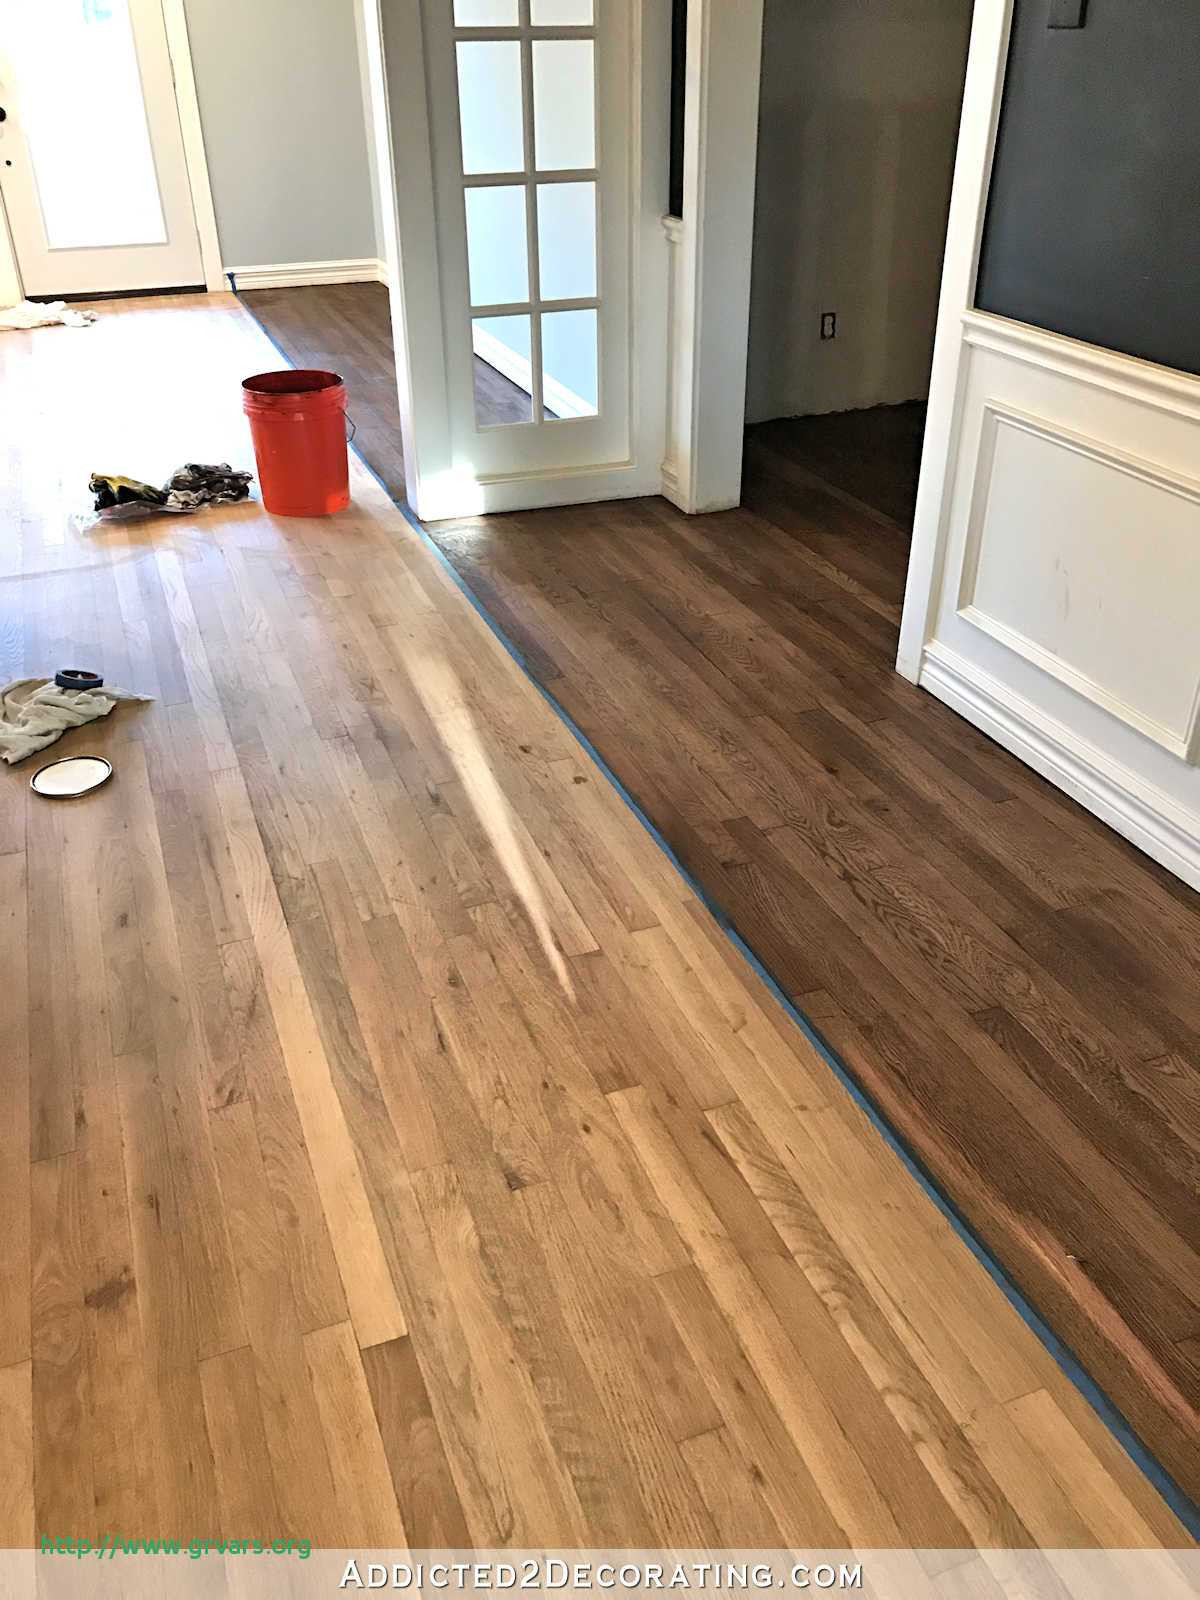 cost to re sand and finish hardwood floors of refinish hardwood floors without sanding 25 meilleur de cost to within refinish hardwood floors without sanding 25 meilleur de cost to restain hardwood floors